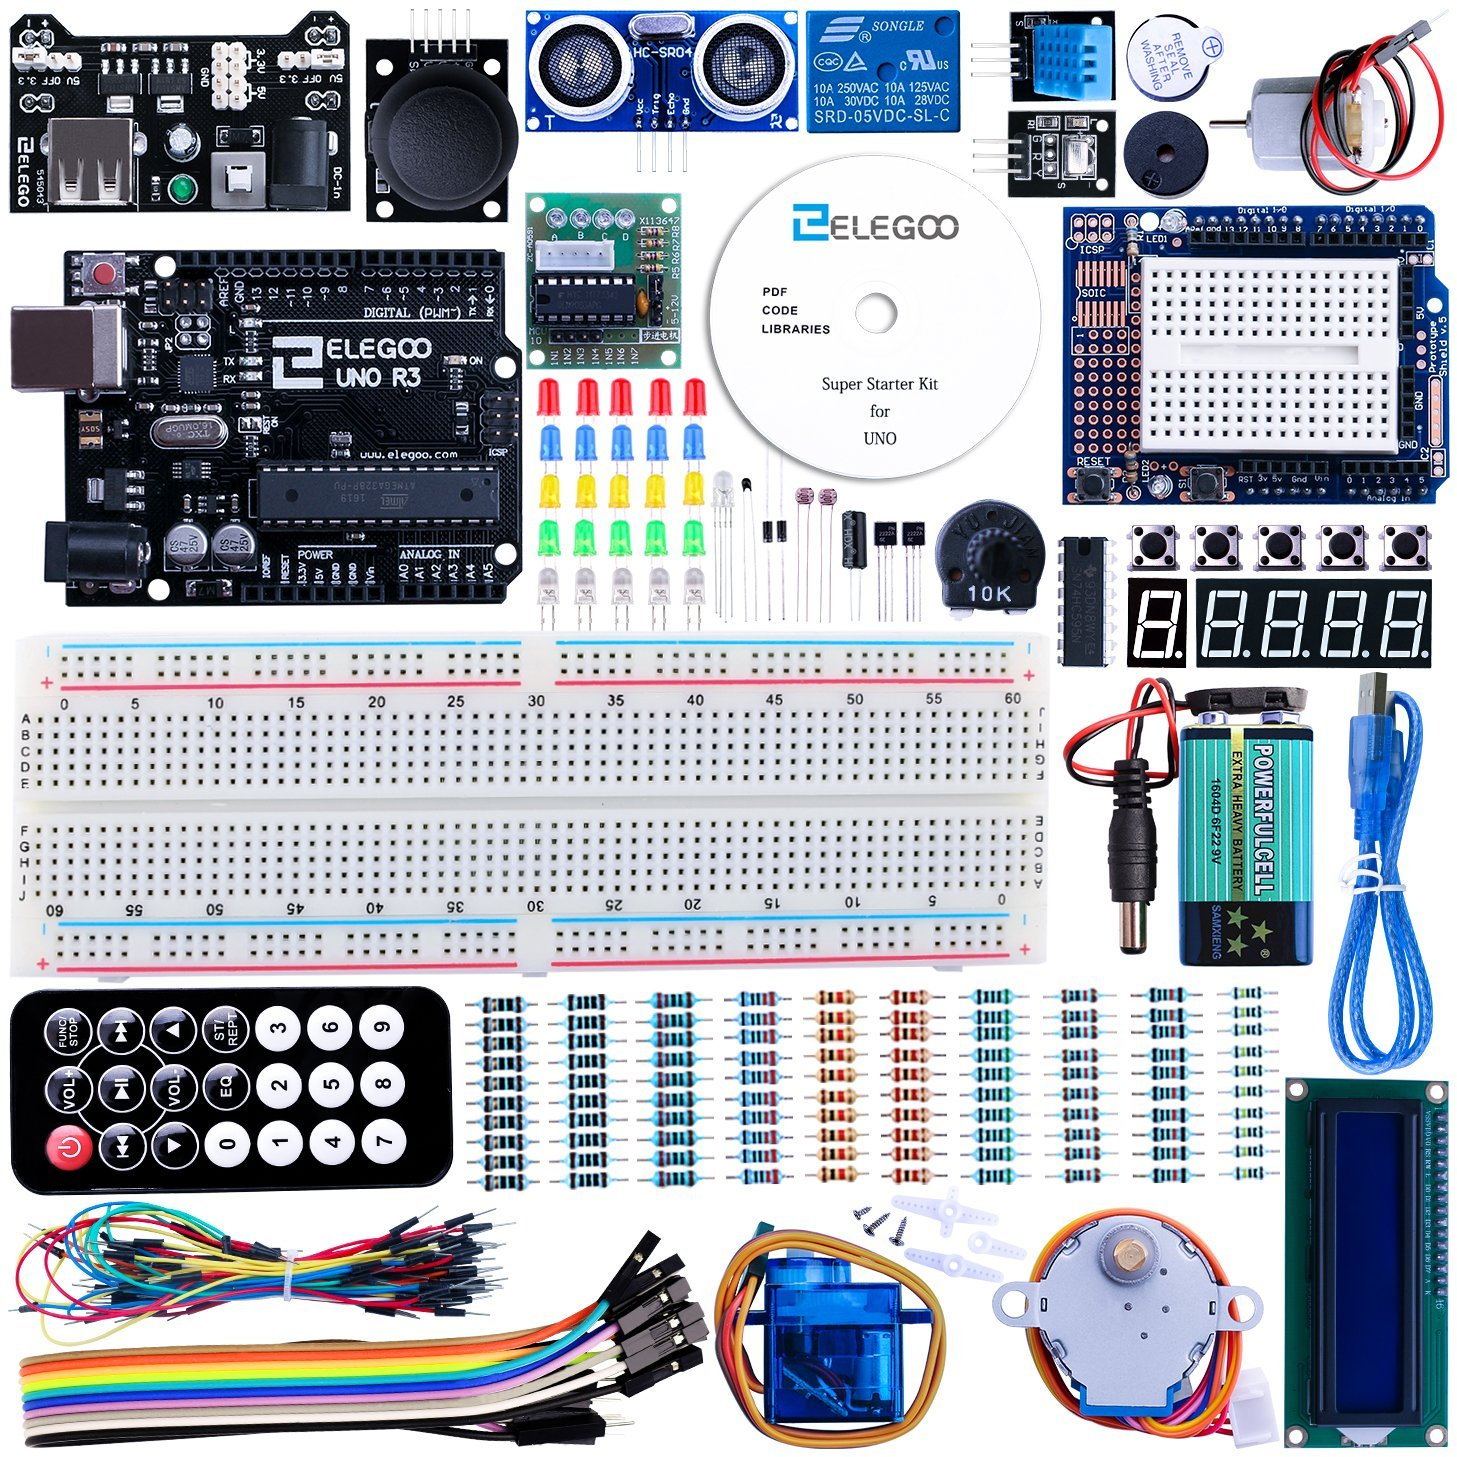 Arduino Boing How To Build A Vibration Motor Circuit Use For Projects Clone Project Kit Loaded With Components